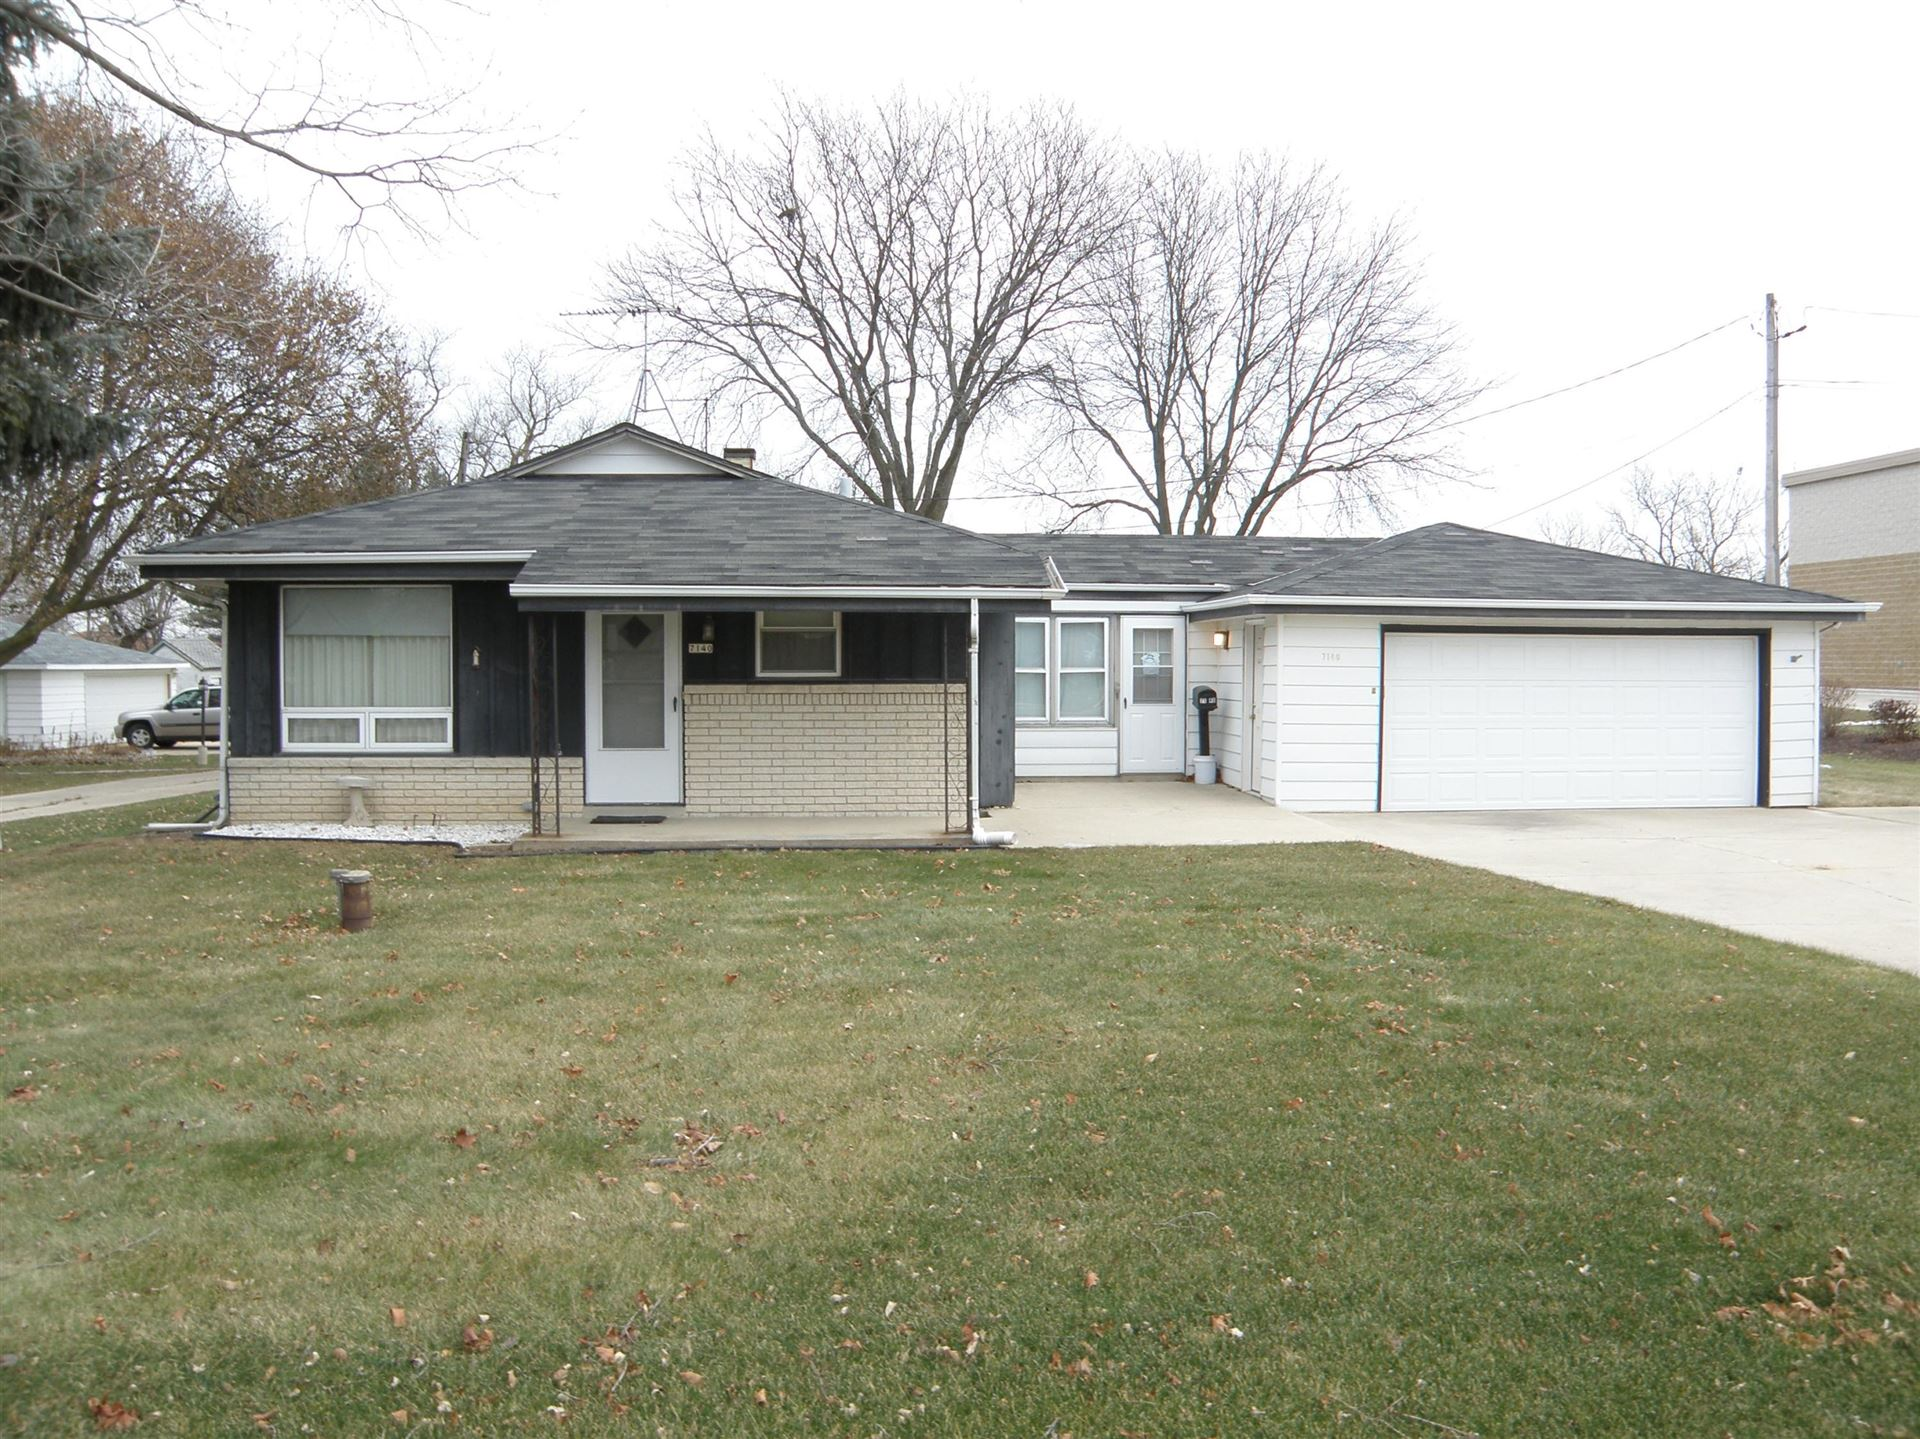 7140 S 13th St, Oak Creek, WI 53154 - #: 1679832